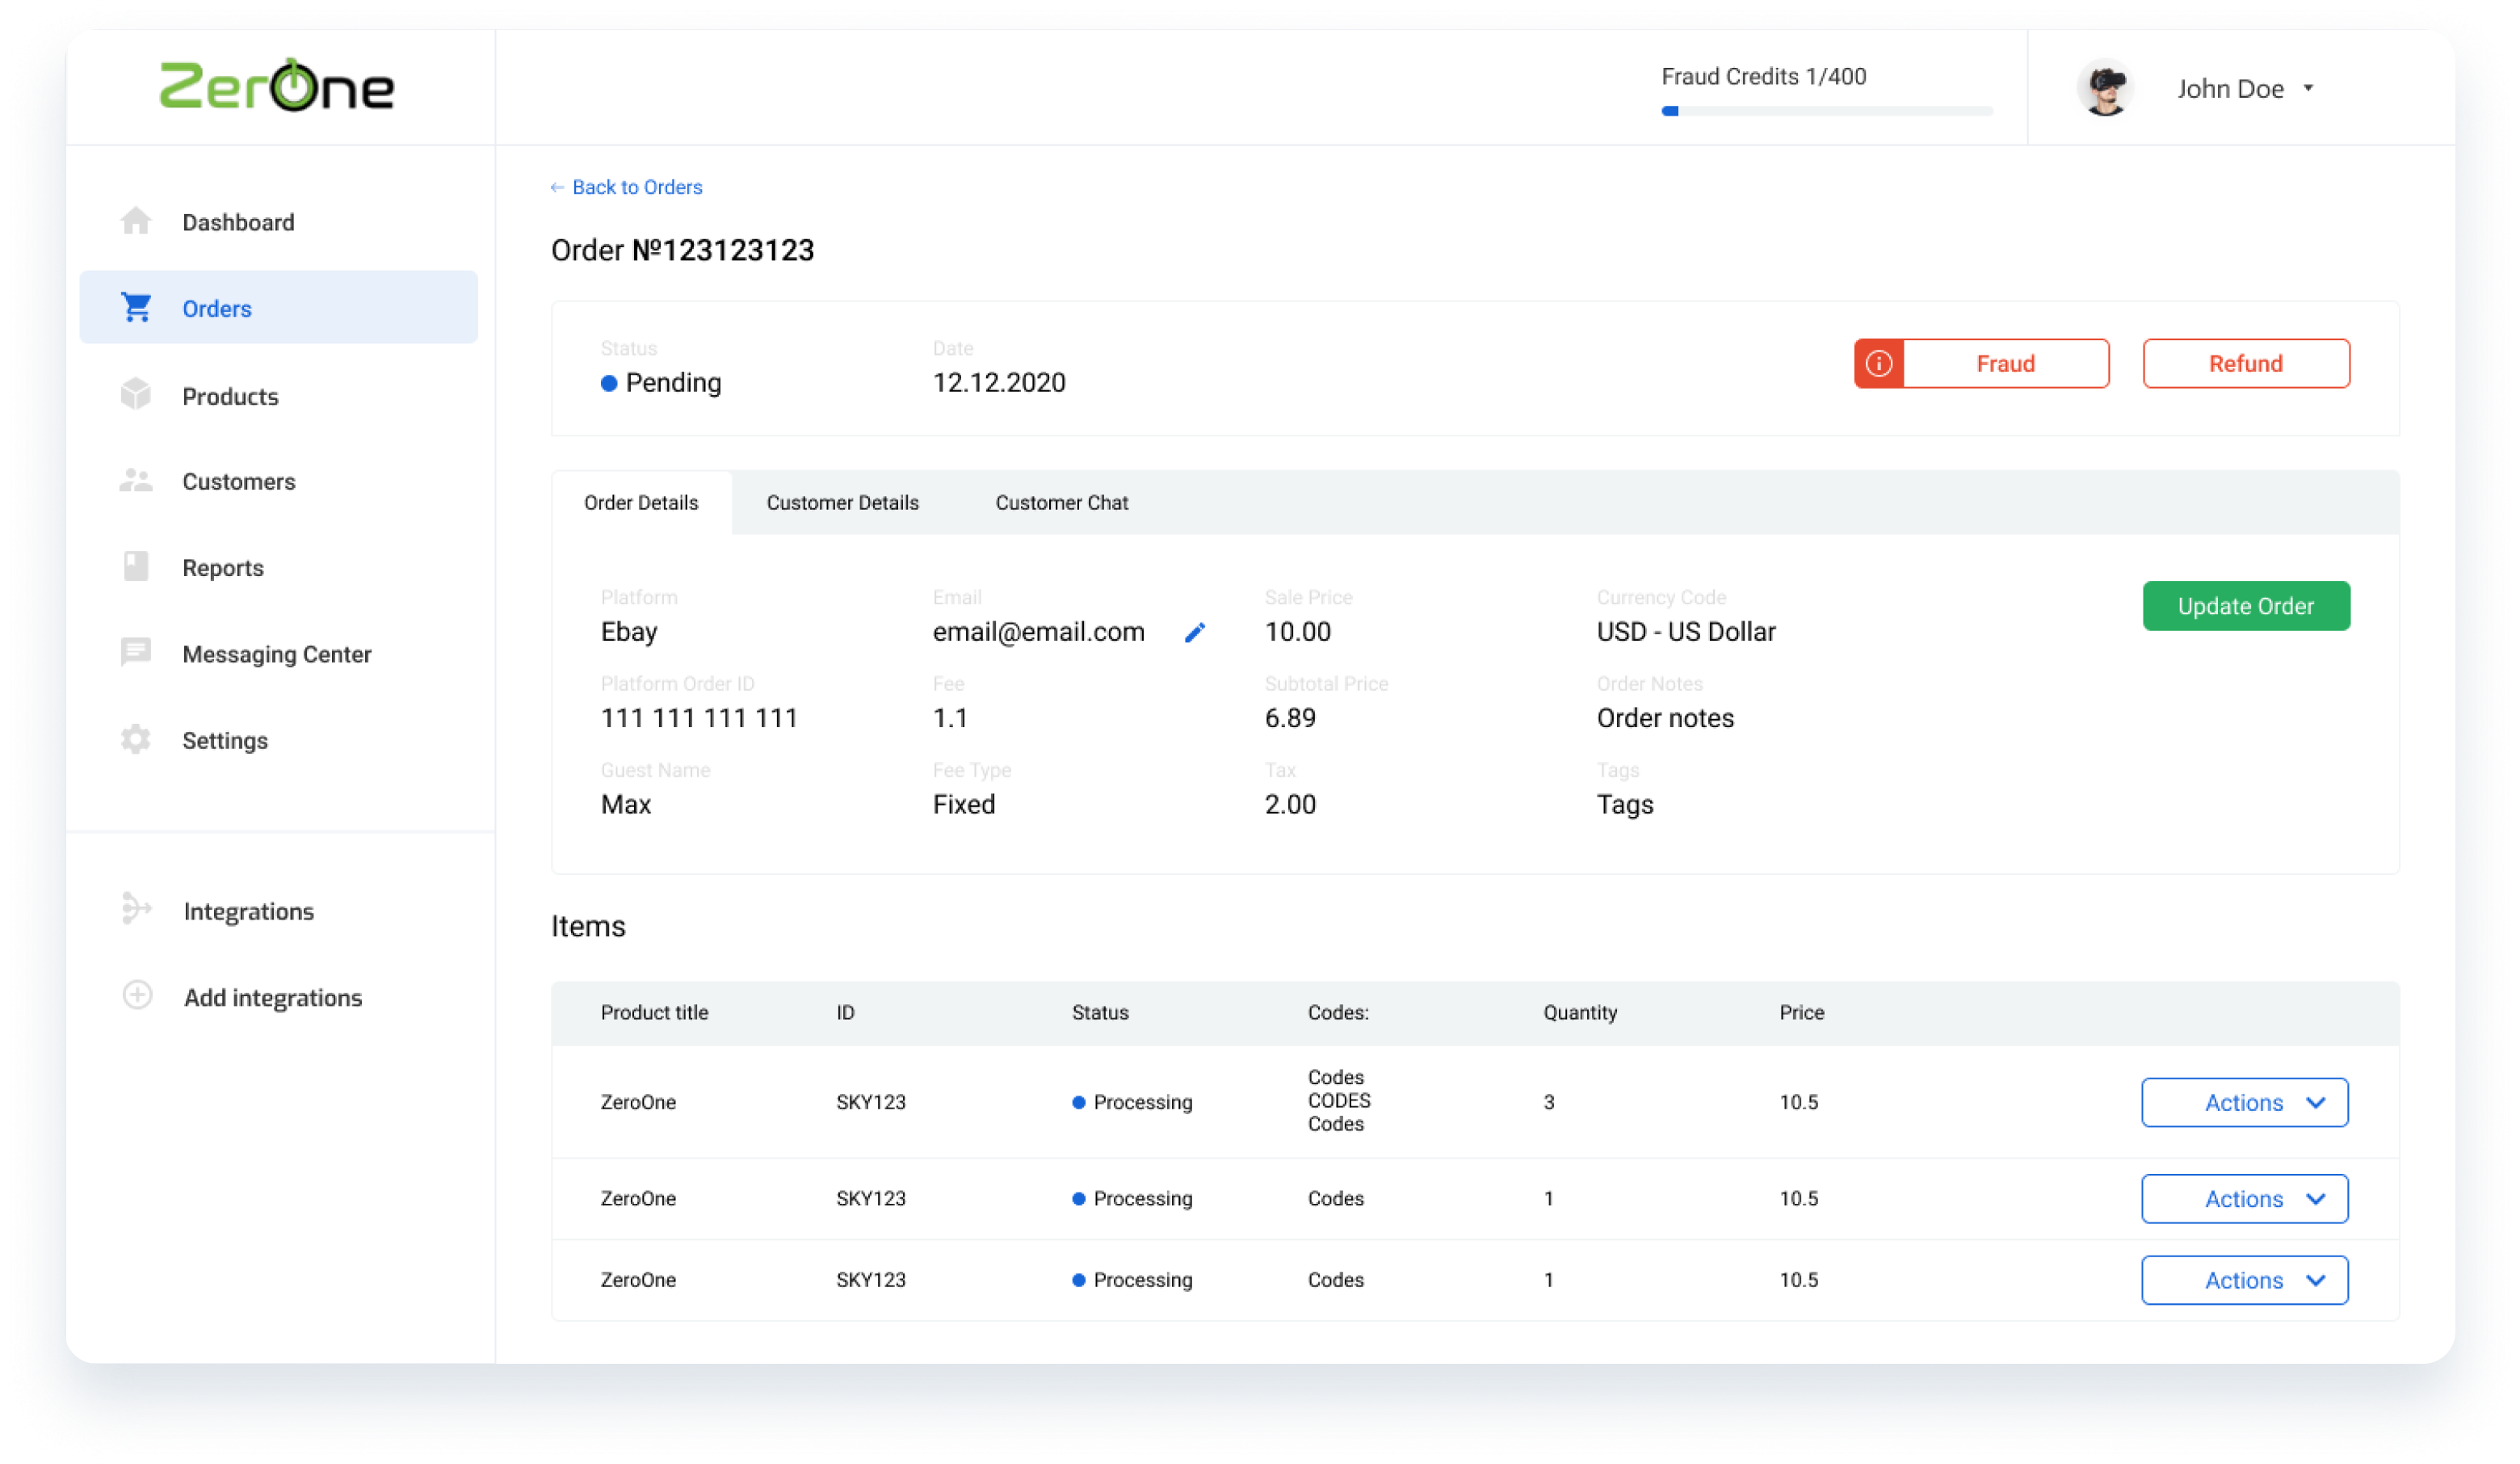 Order management for digital products. ZeroOne dashboard for eBay orders for digital goods